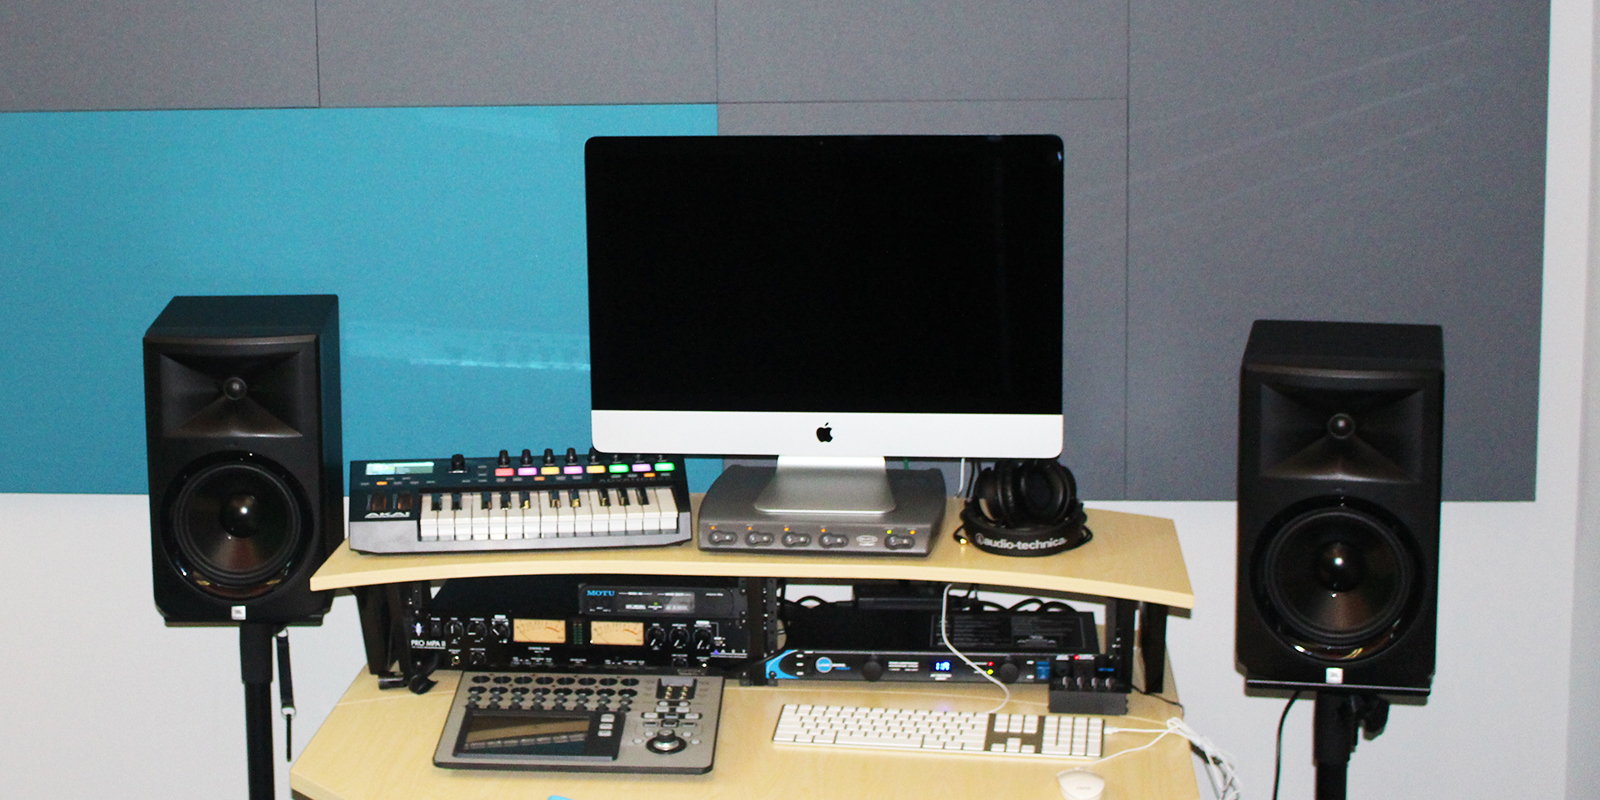 San Diego teens can record and produce their own music using equipment at the IDEA Lab at Malcolm X Library, San Diego, CA